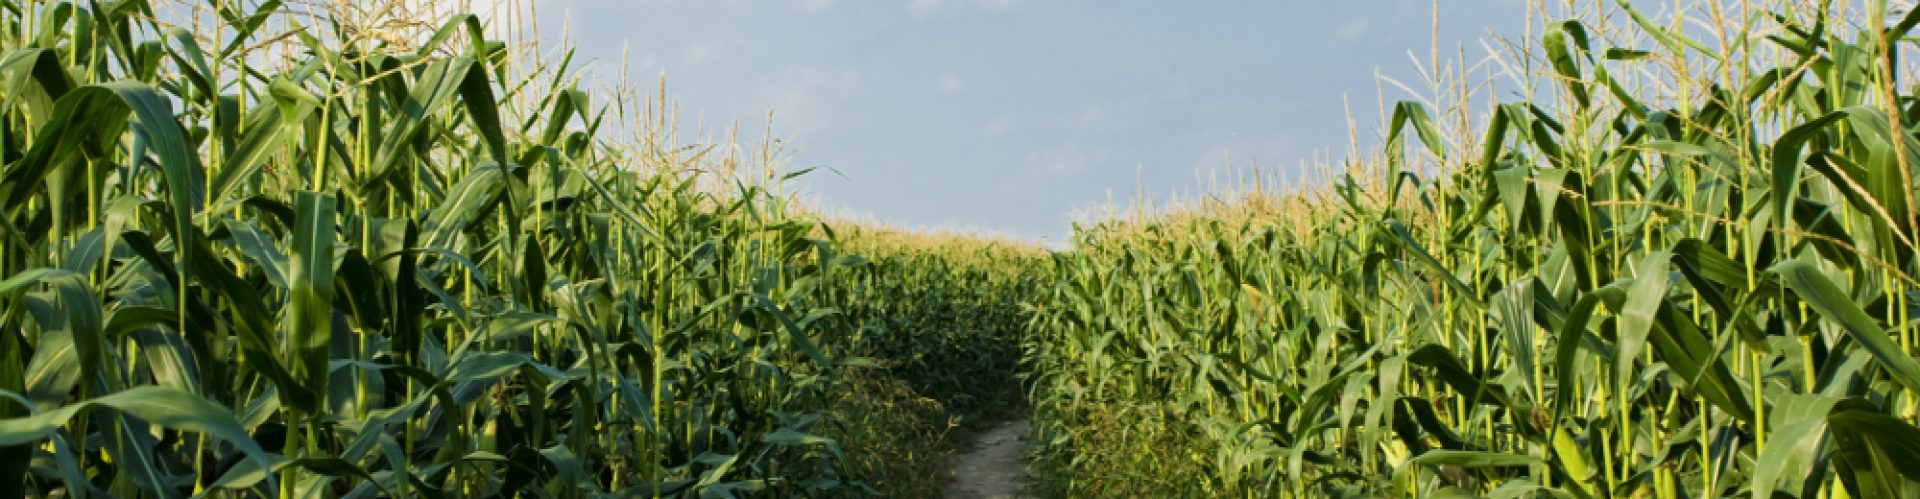 https://themes.dxdemos.eu/wp-content/uploads/2014/08/cropped-Dirt-Road-Among-Corn.jpg